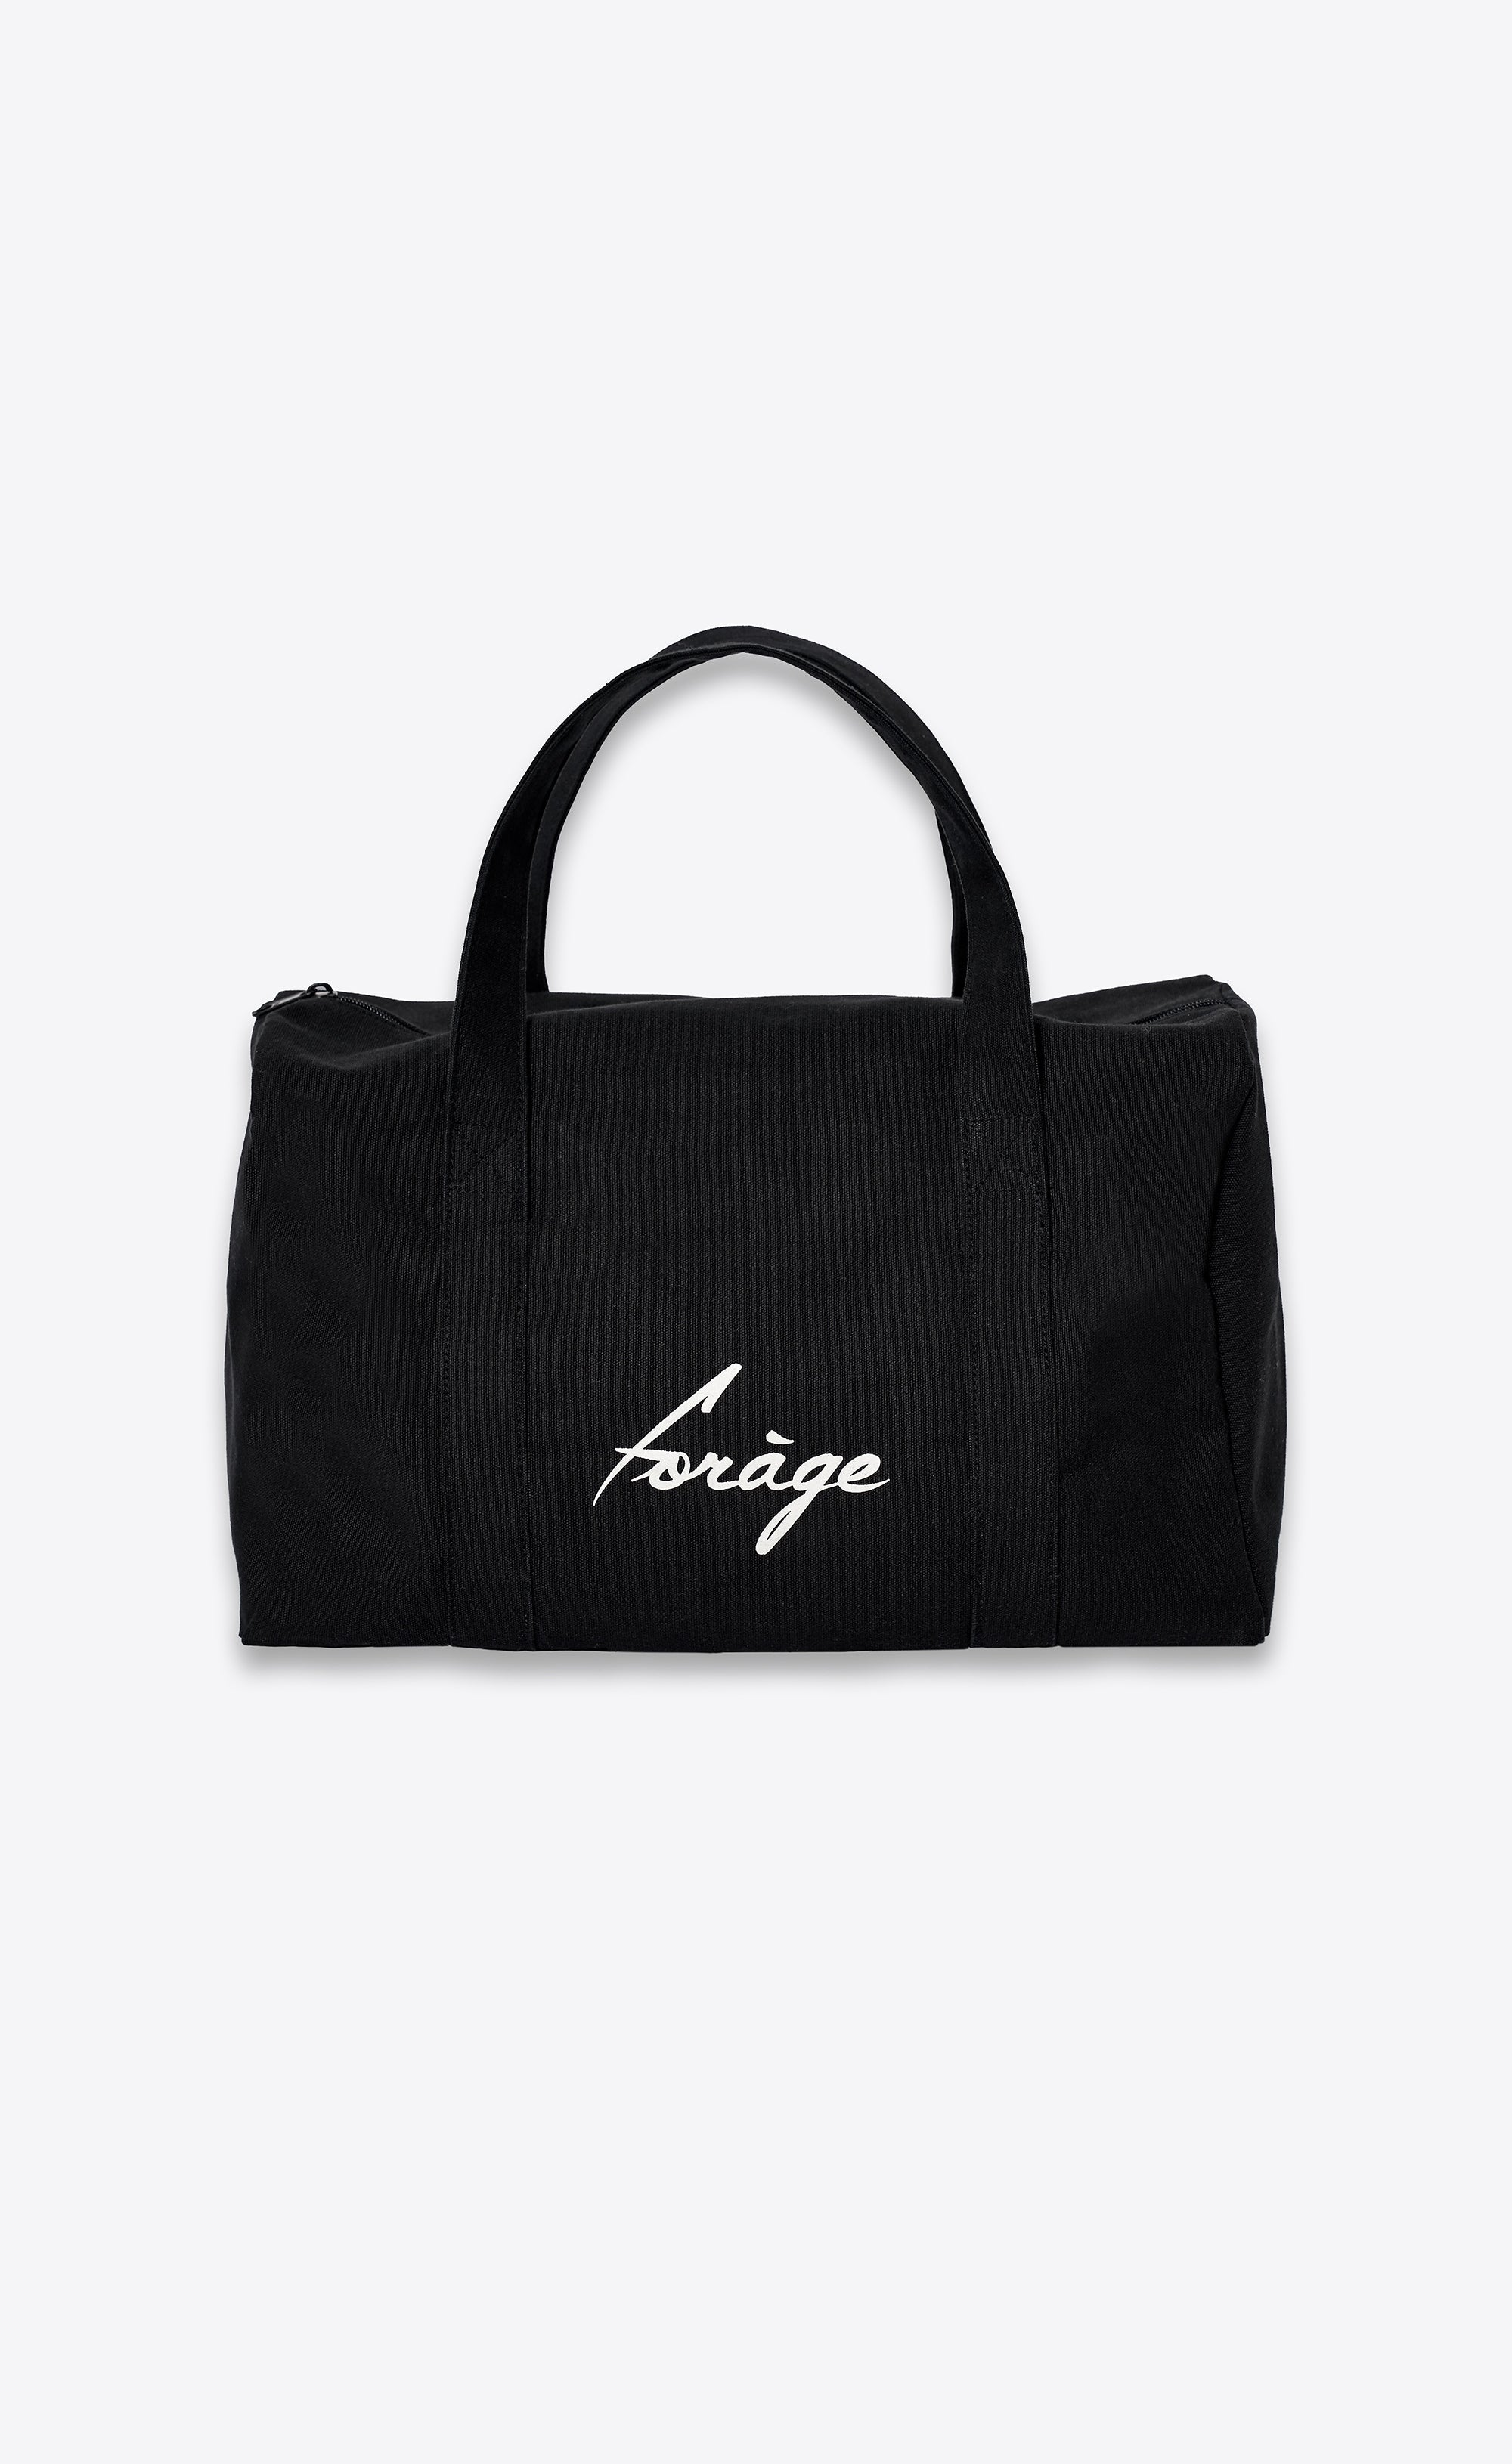 LOGO DUFFLE BAG - Forage-Clothing